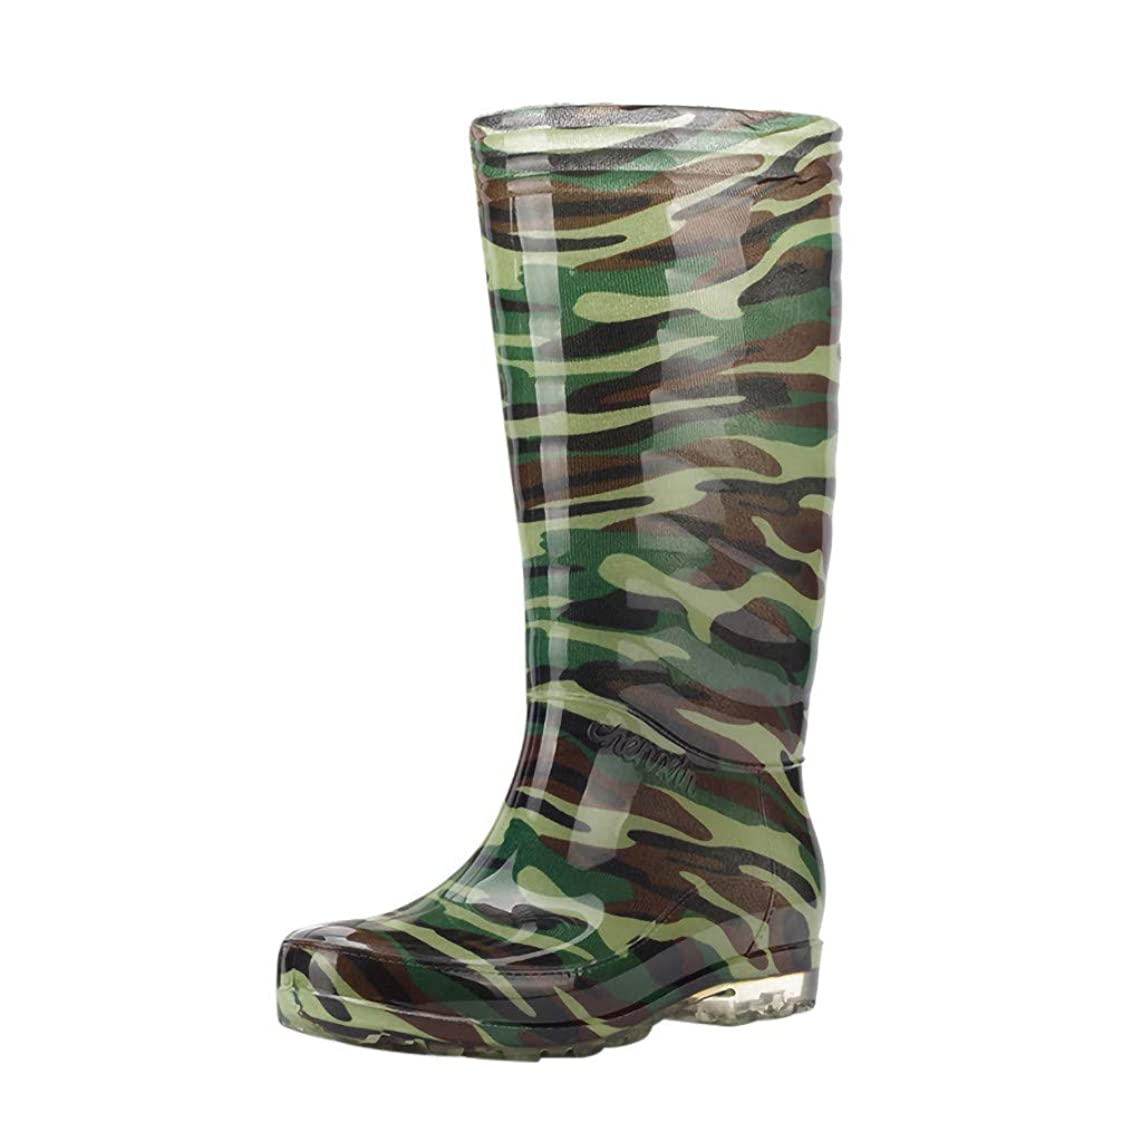 Men's Leisure Camouflage Flat - Round Toe Shoes Waterproof High Cylinder Rain Boot,2019 New